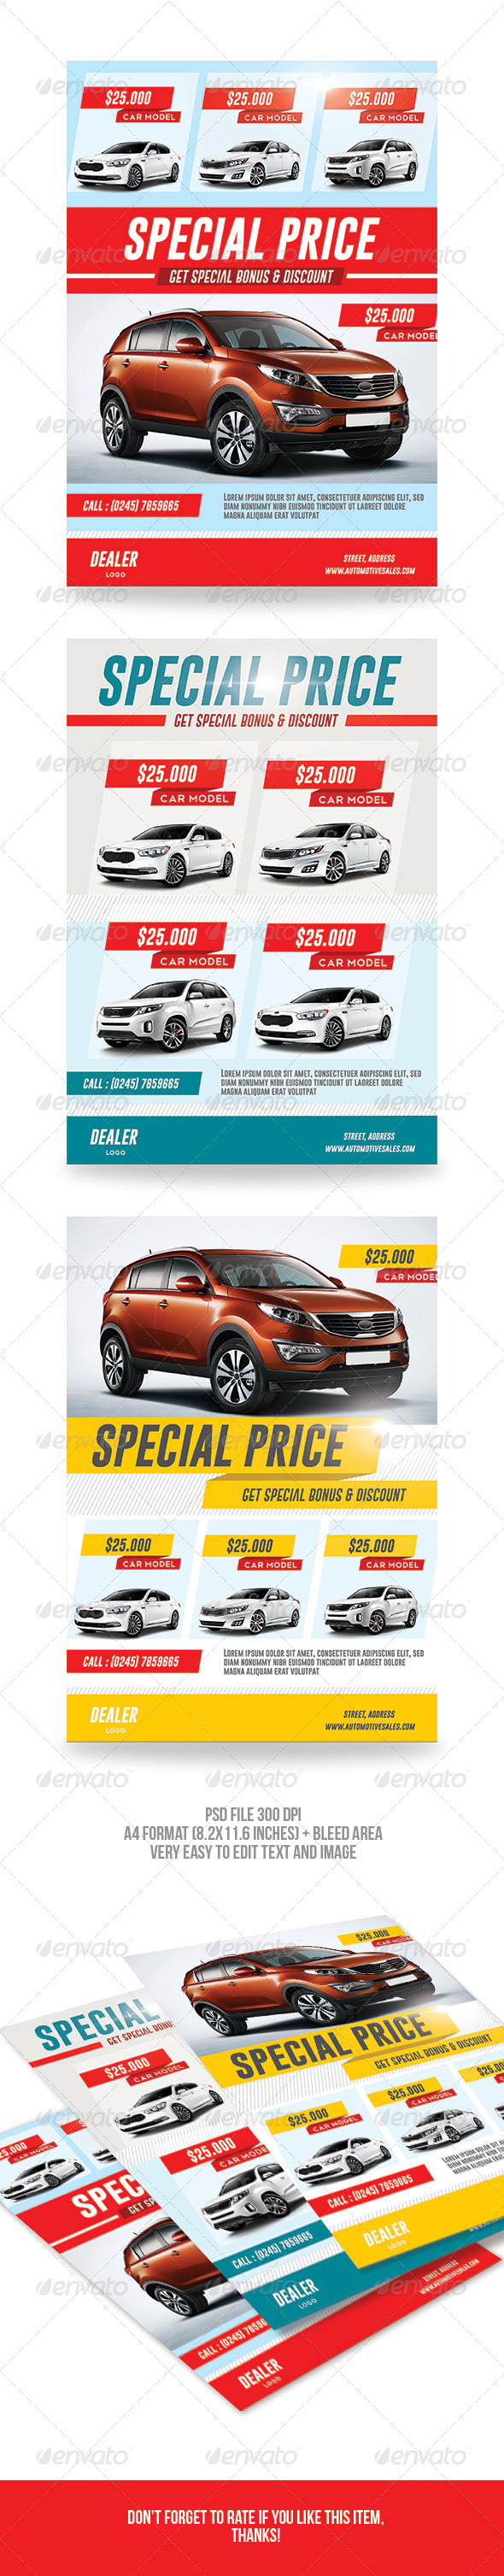 Car Sale Flyer - Corporate Flyers